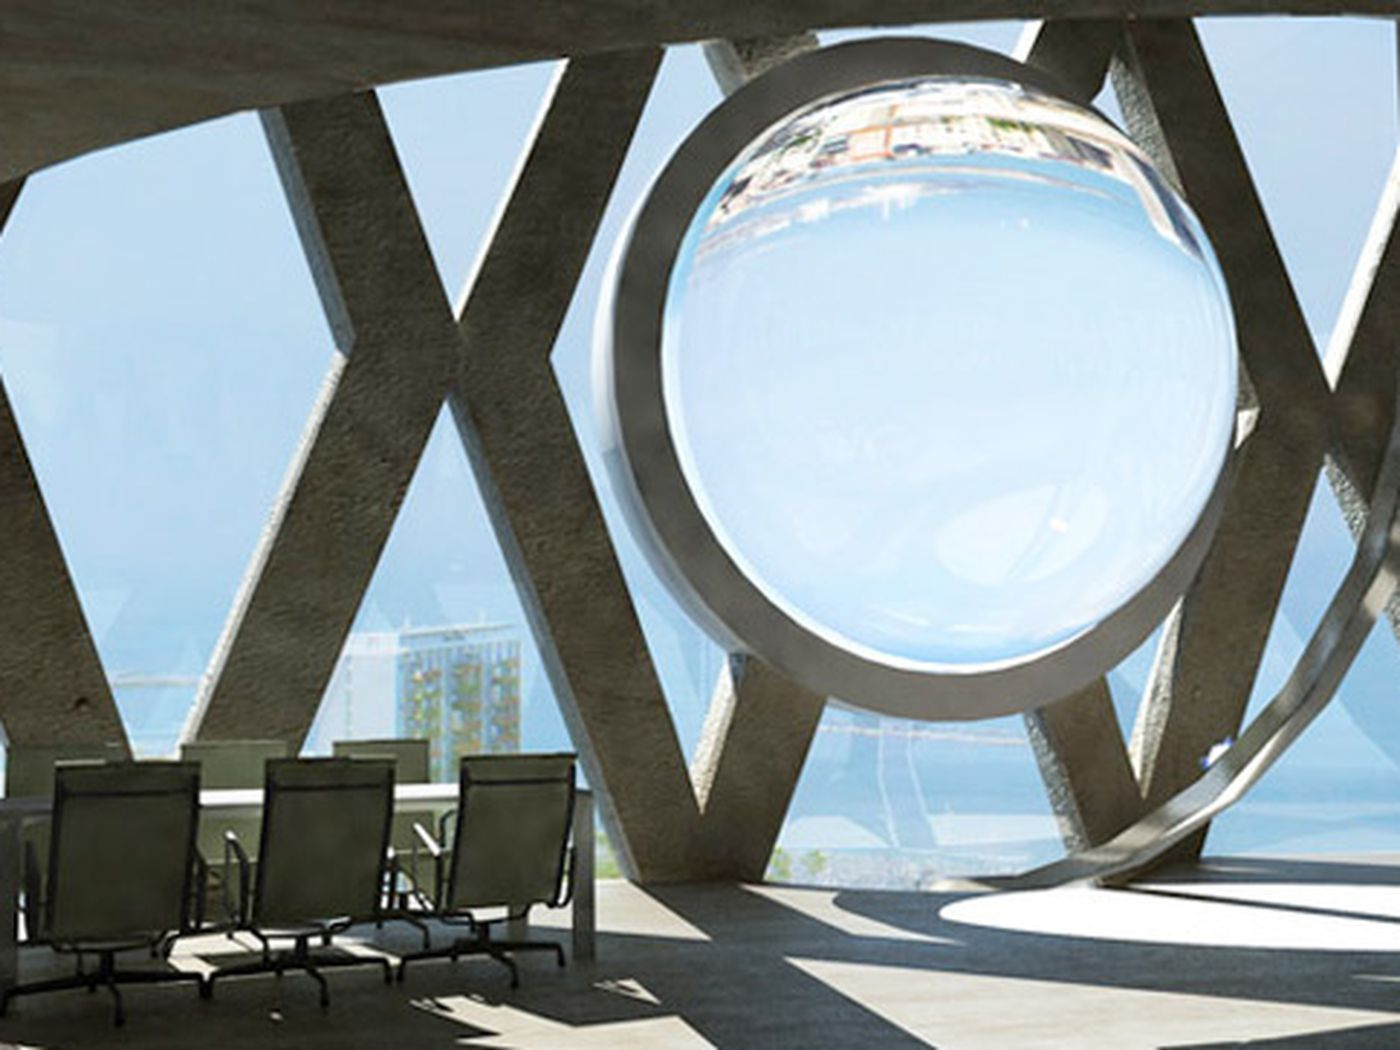 Eco-friendly art: Andre Broessel's glass orb helps maximize solar